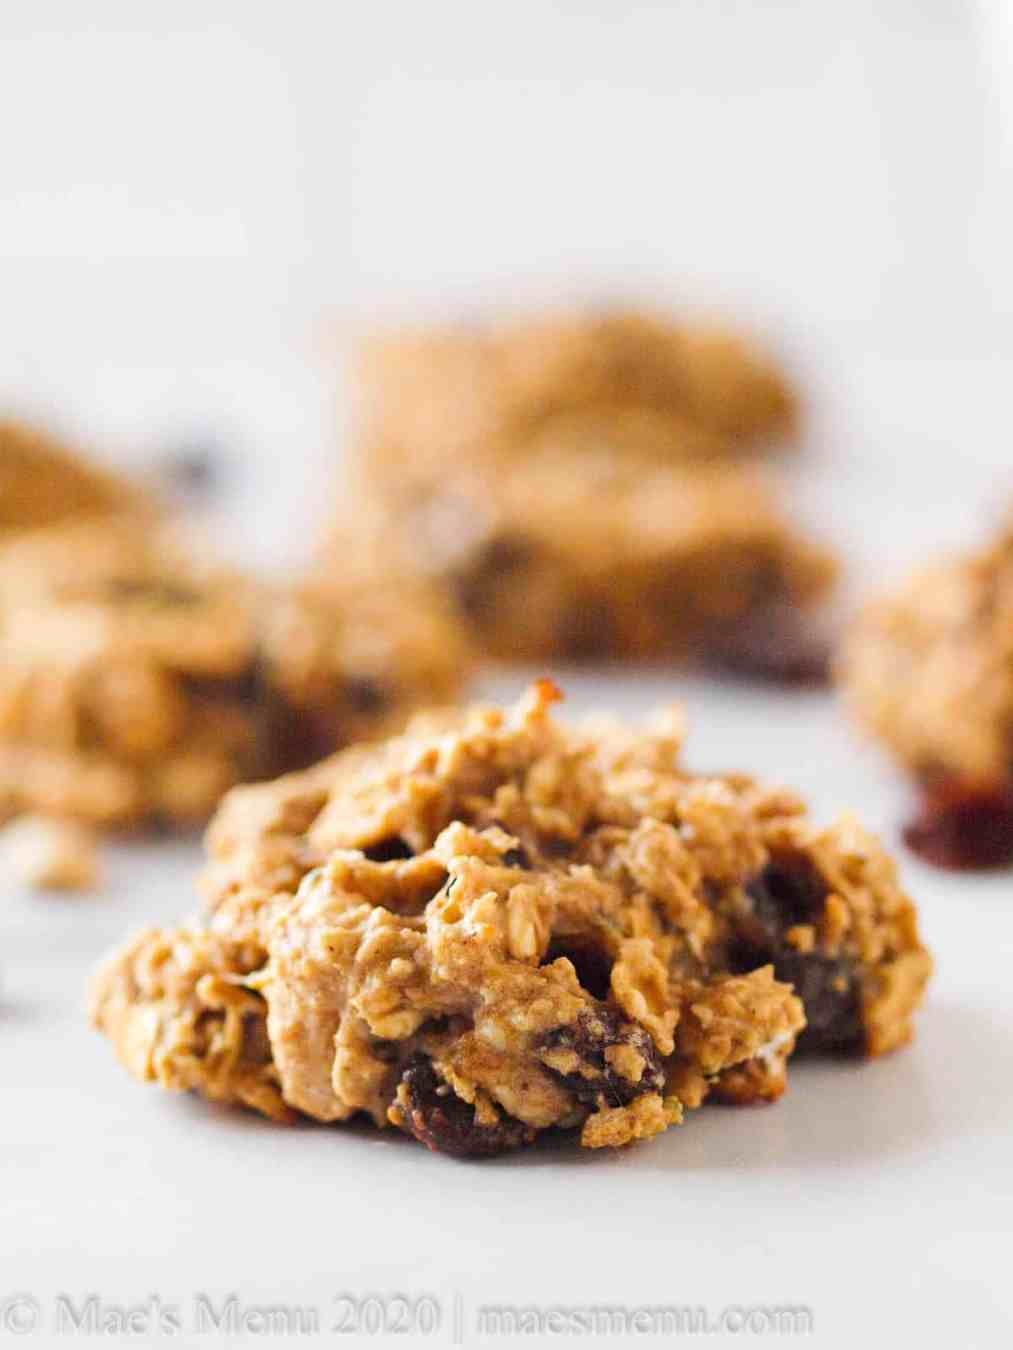 an upclose picgture of an oatmeal protein cookie with other oat protein cookies in the background